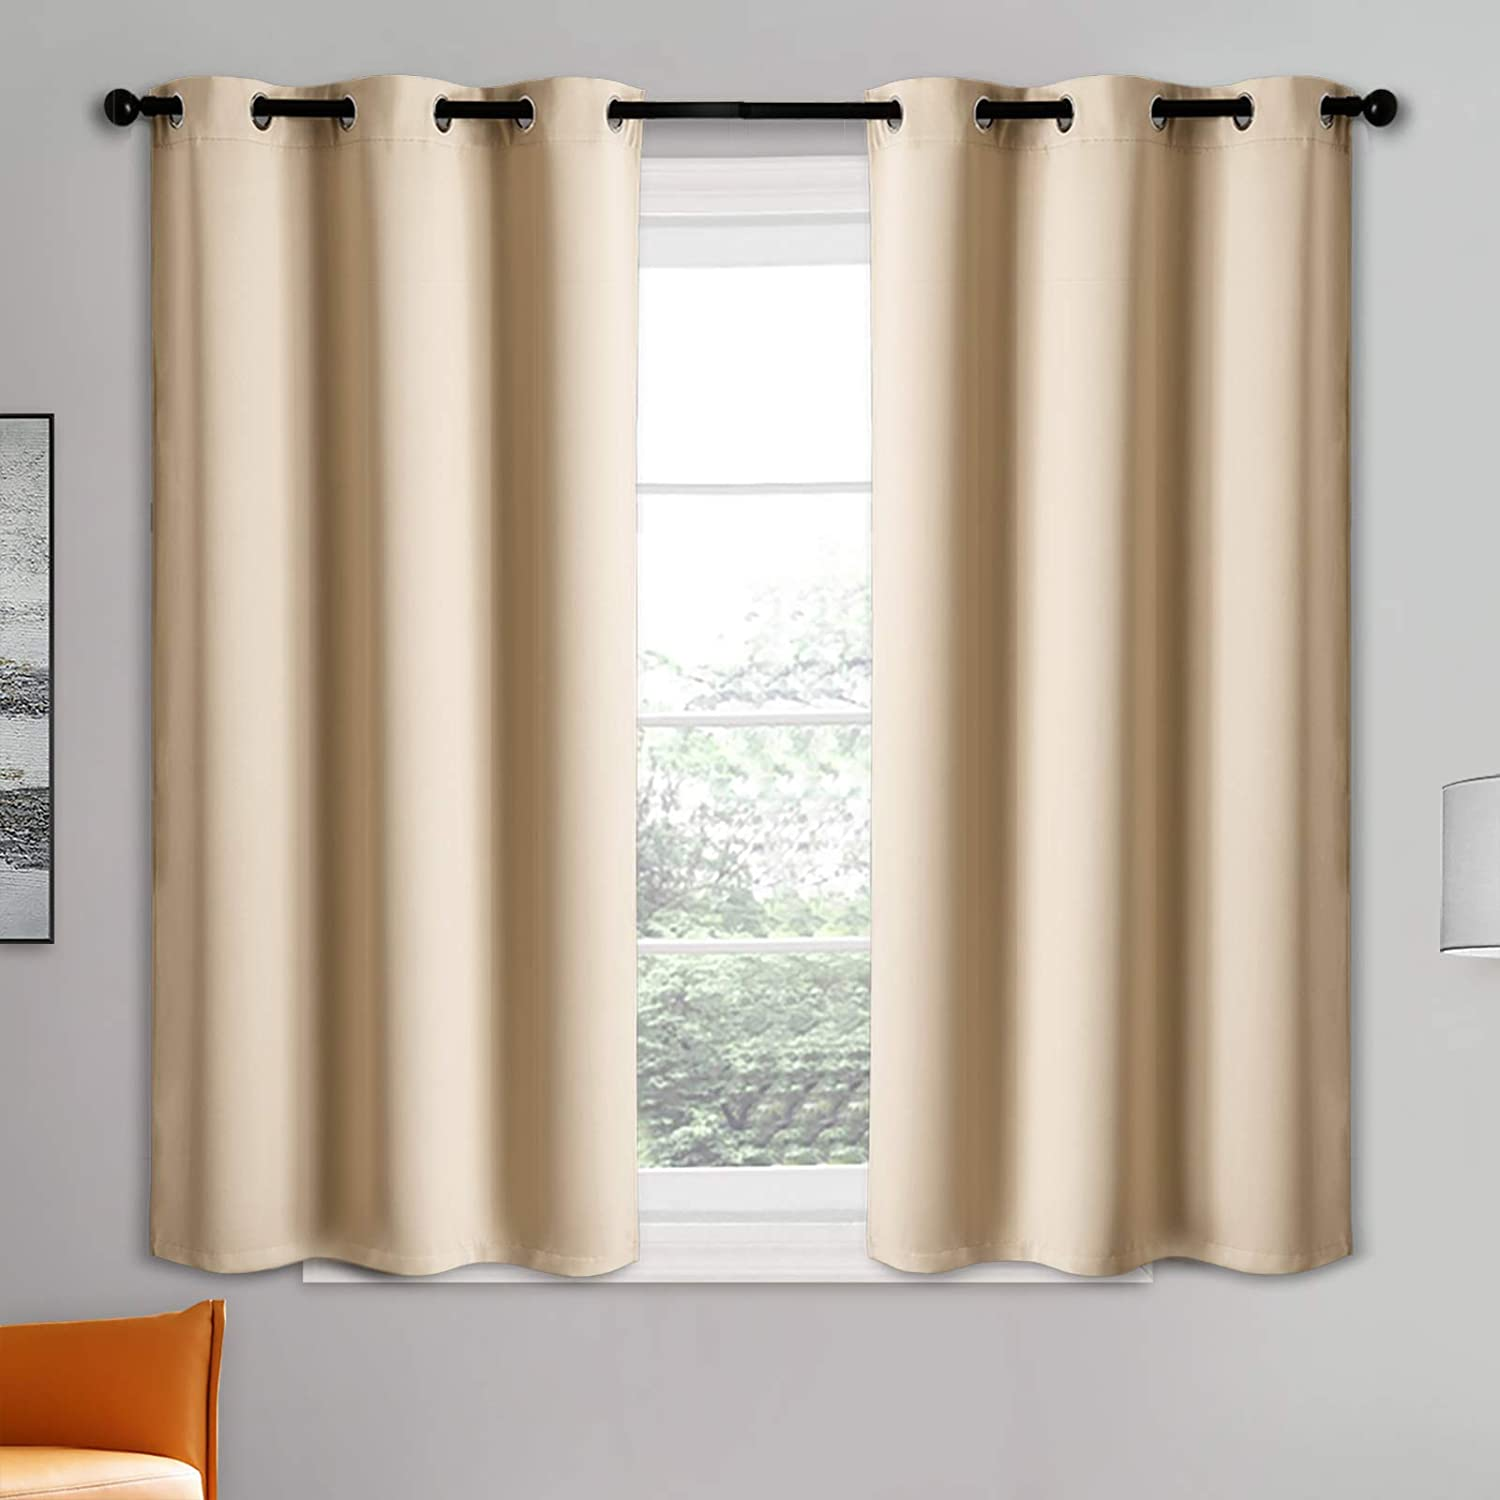 Blackout Curtain Panels - Grommets Blackout Thermal Insulated Curtains, Draperies for Bedroom、Living Room Windows(Biscotti Beige, 2 Panels, 34